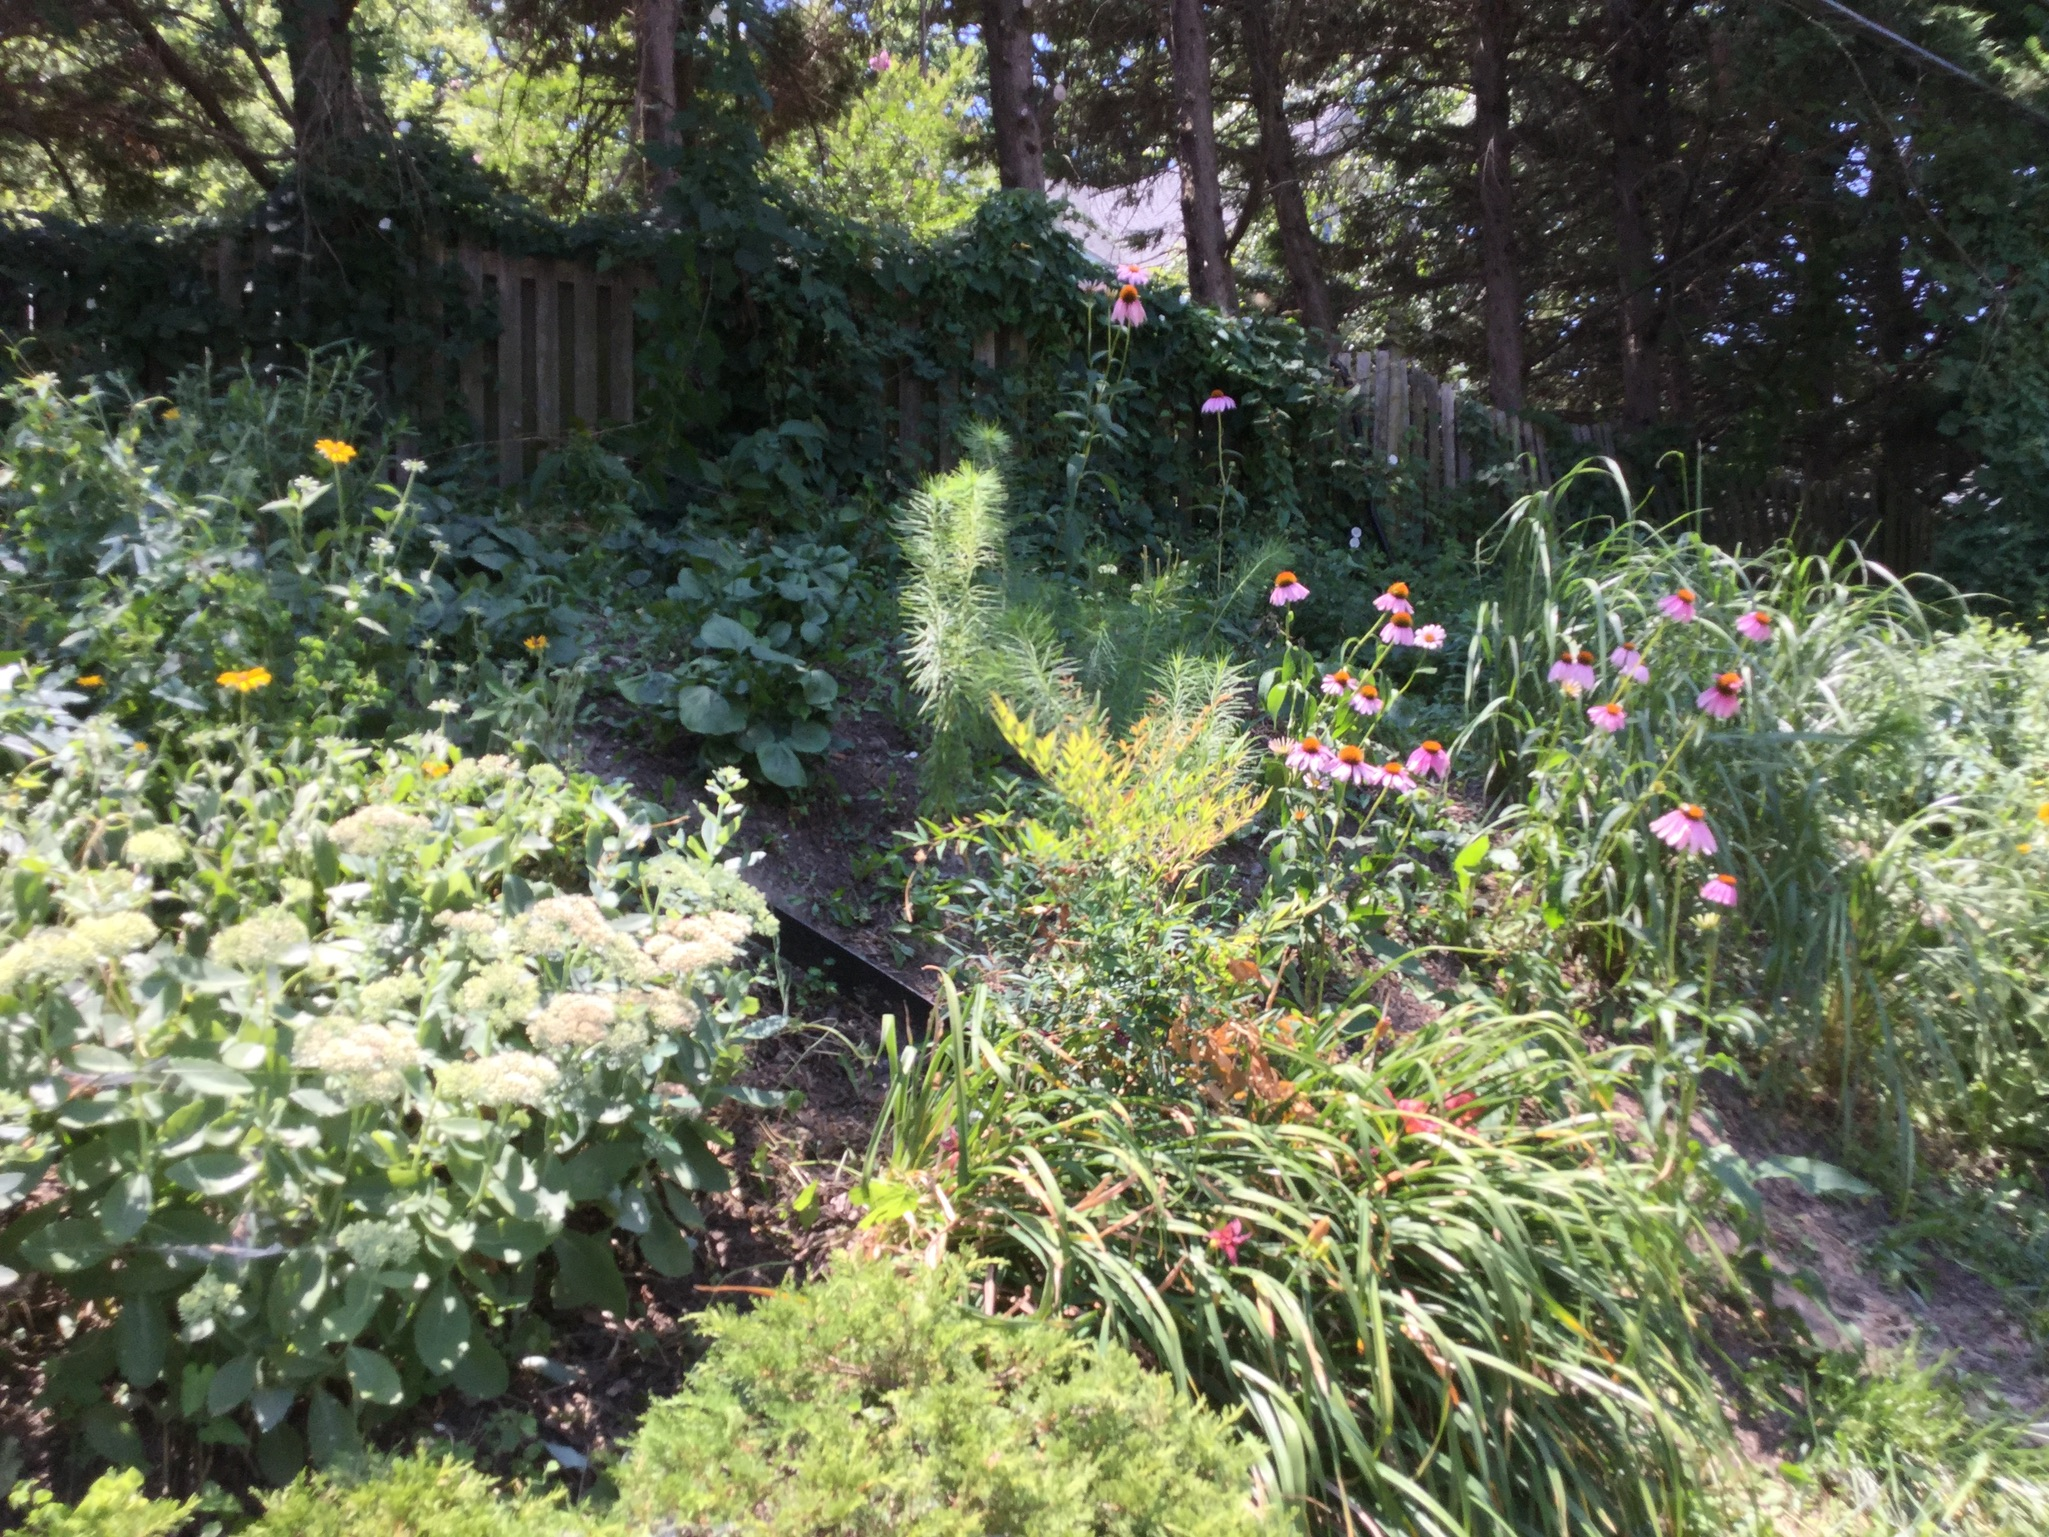 July 14, 2018 - the coneflowers, Black-eyed Susans, and mountain mint are blooming!